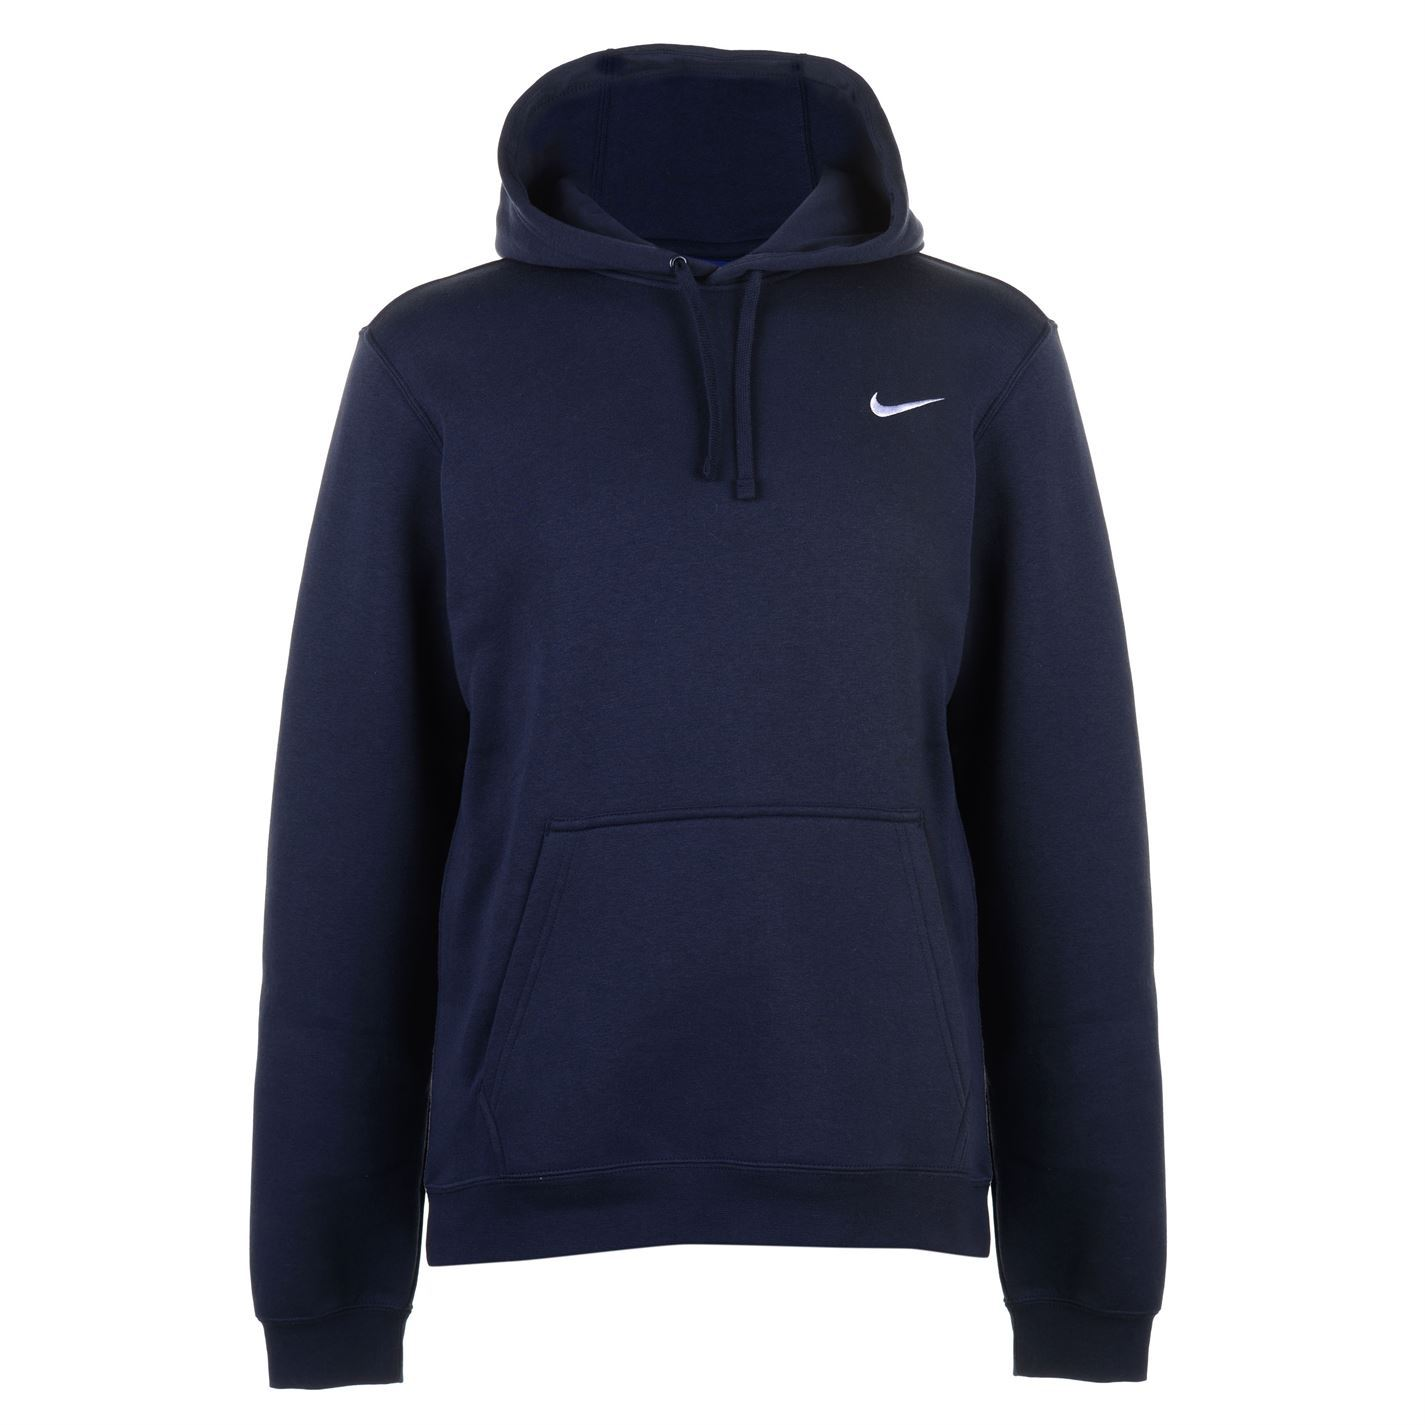 Nike-Fundamentals-Fleece-Lined-Pullover-Hoody-Mens-OTH-Hoodie-Sweatshirt-Sweater thumbnail 8